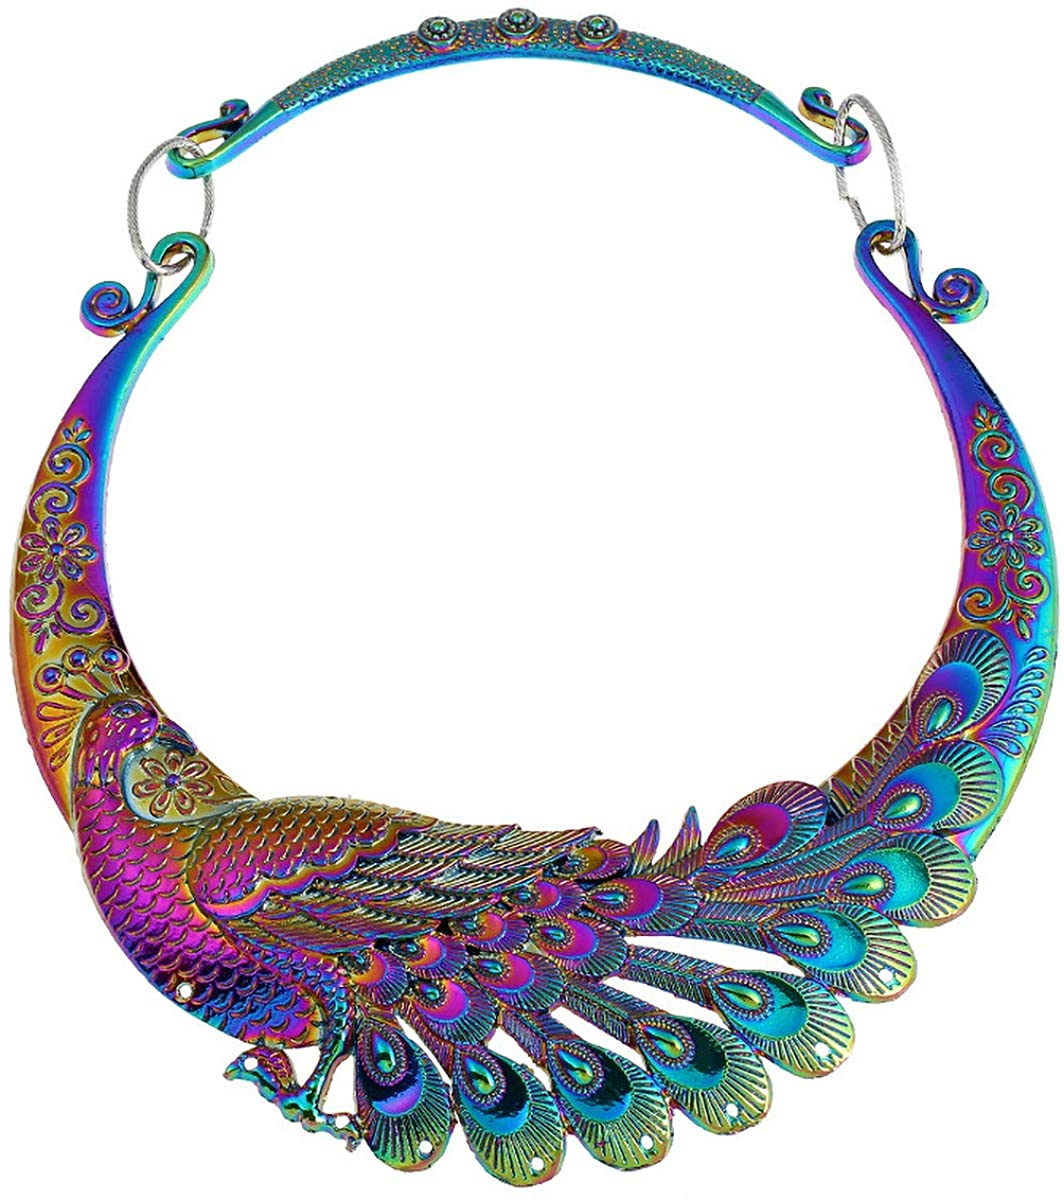 Fld Retro Vintage Ethnic Carved Peacock Chunky Bib Collar Choker Necklace for Women Indian Exaggerated Jewelry Collared Vintage Necklace